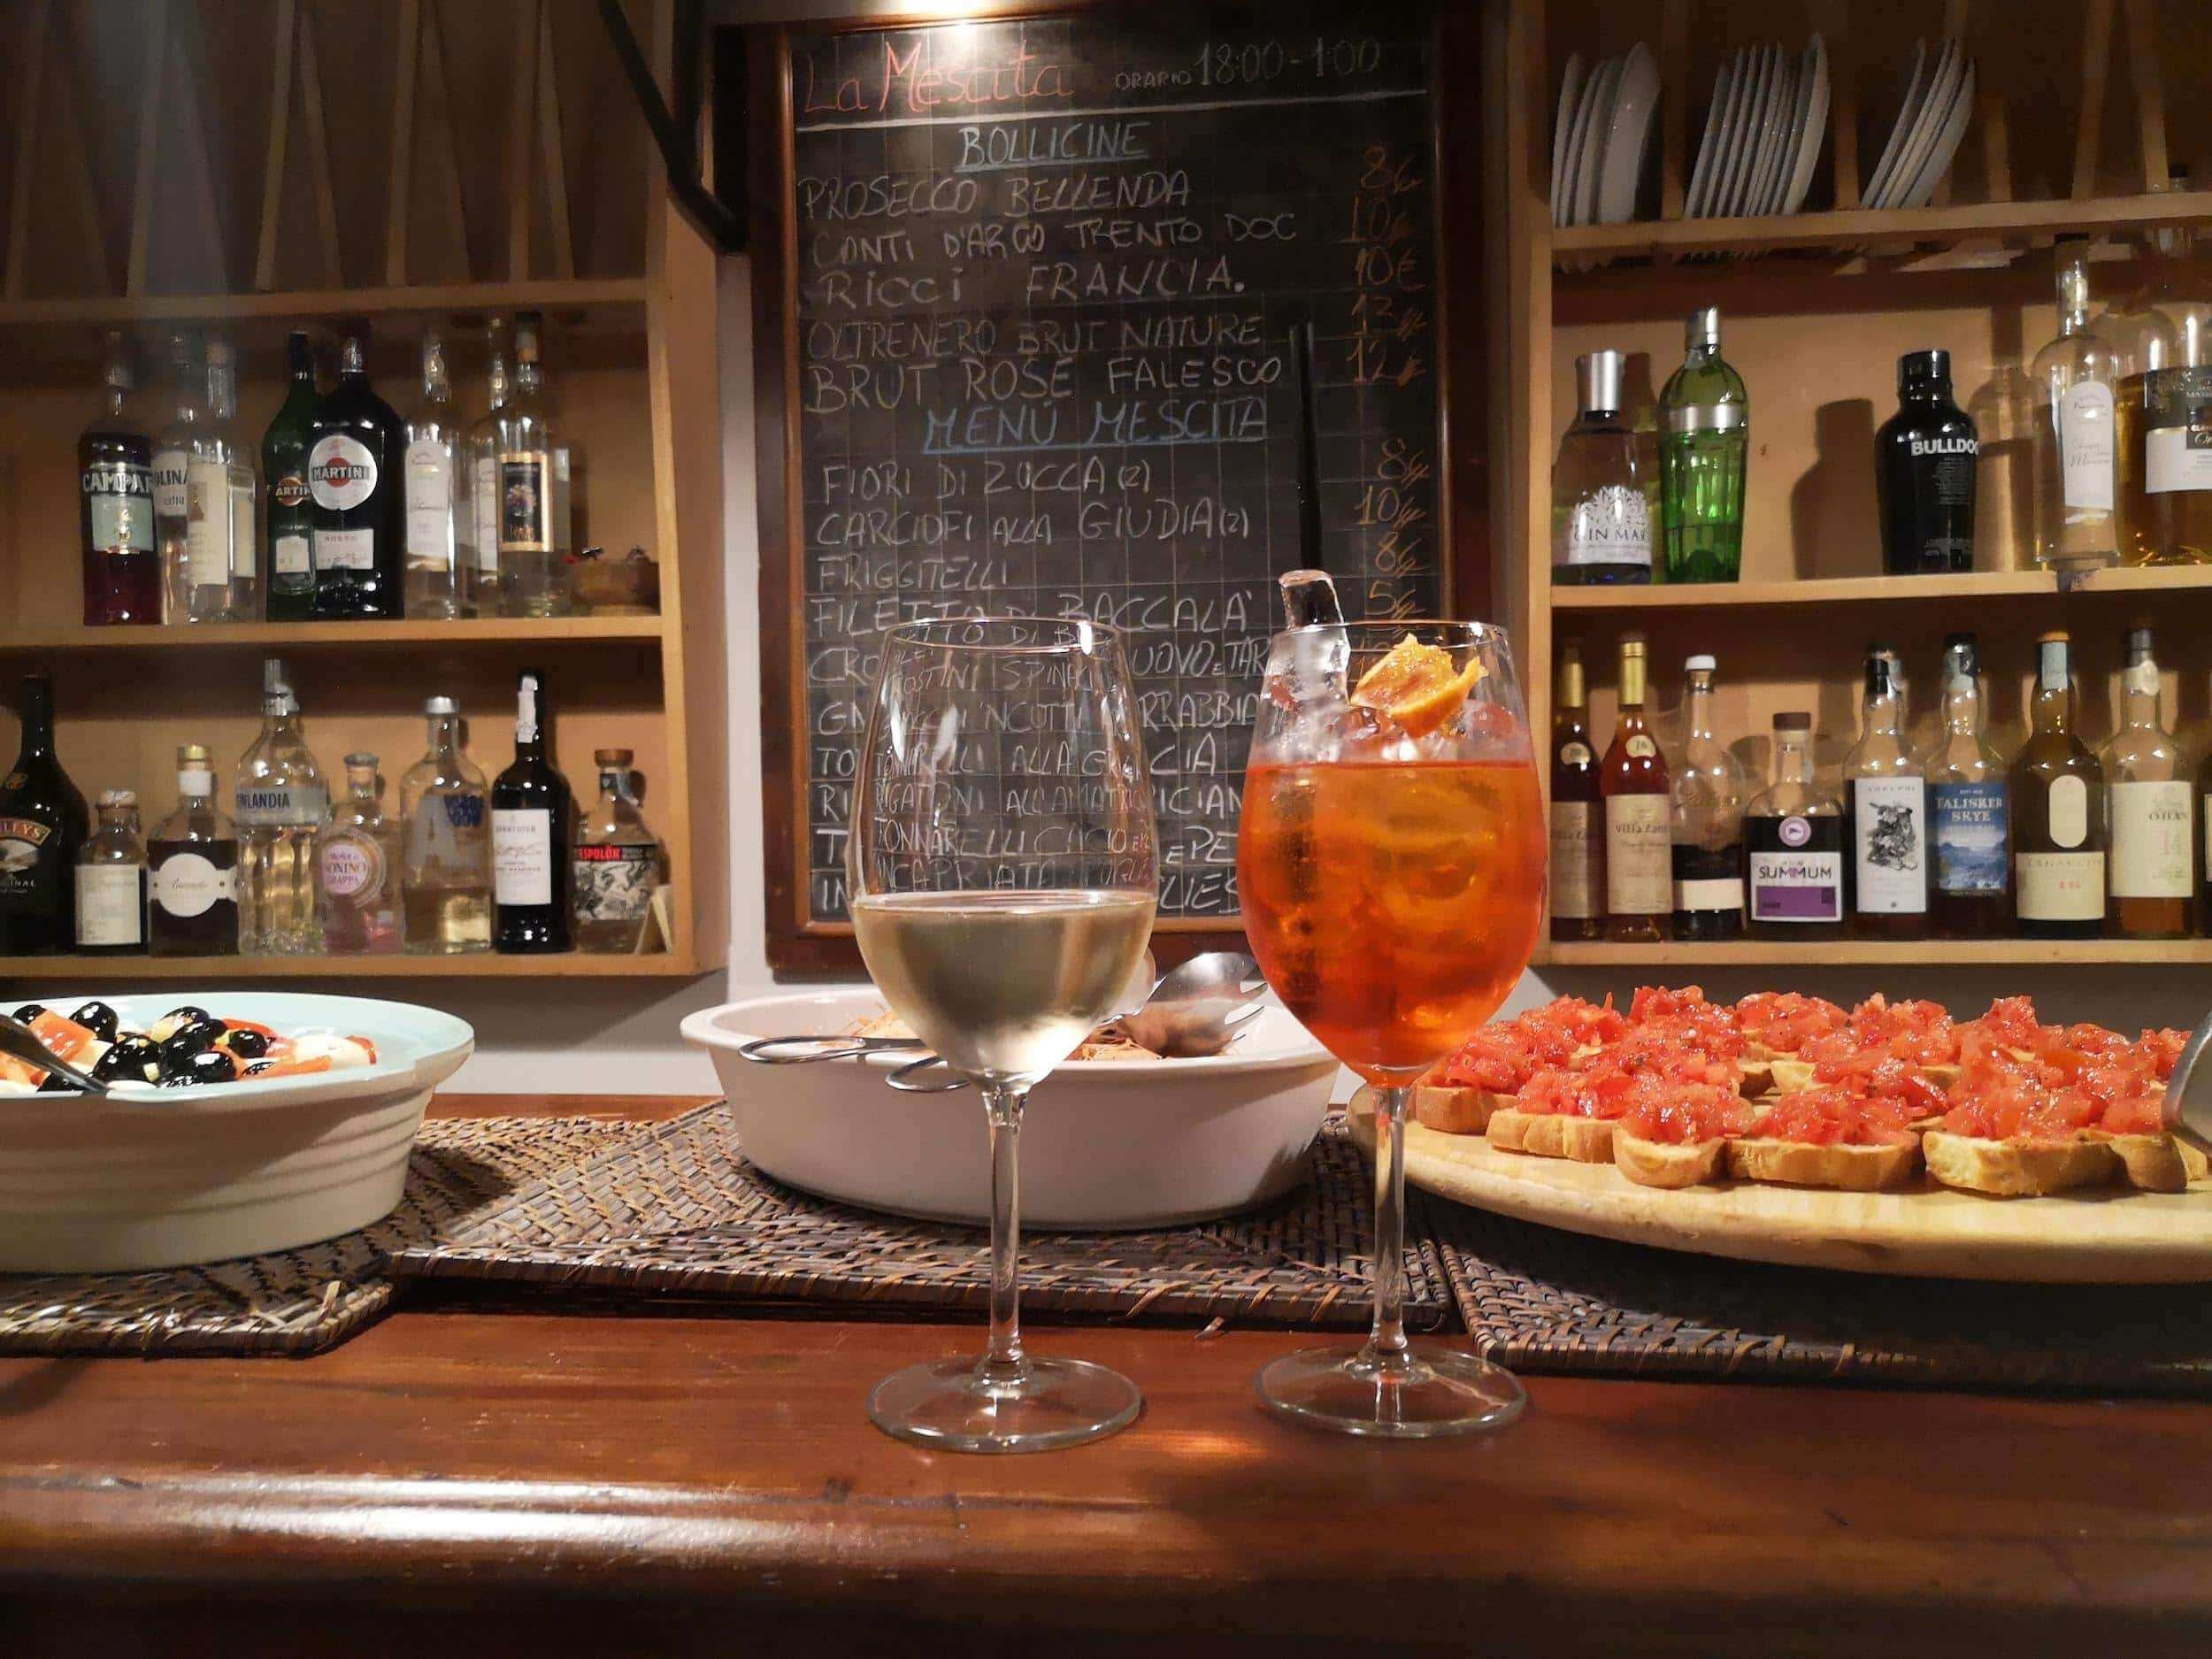 2 glasses, one with prosecco and one with spritz, on a counter with fingerfood on the background